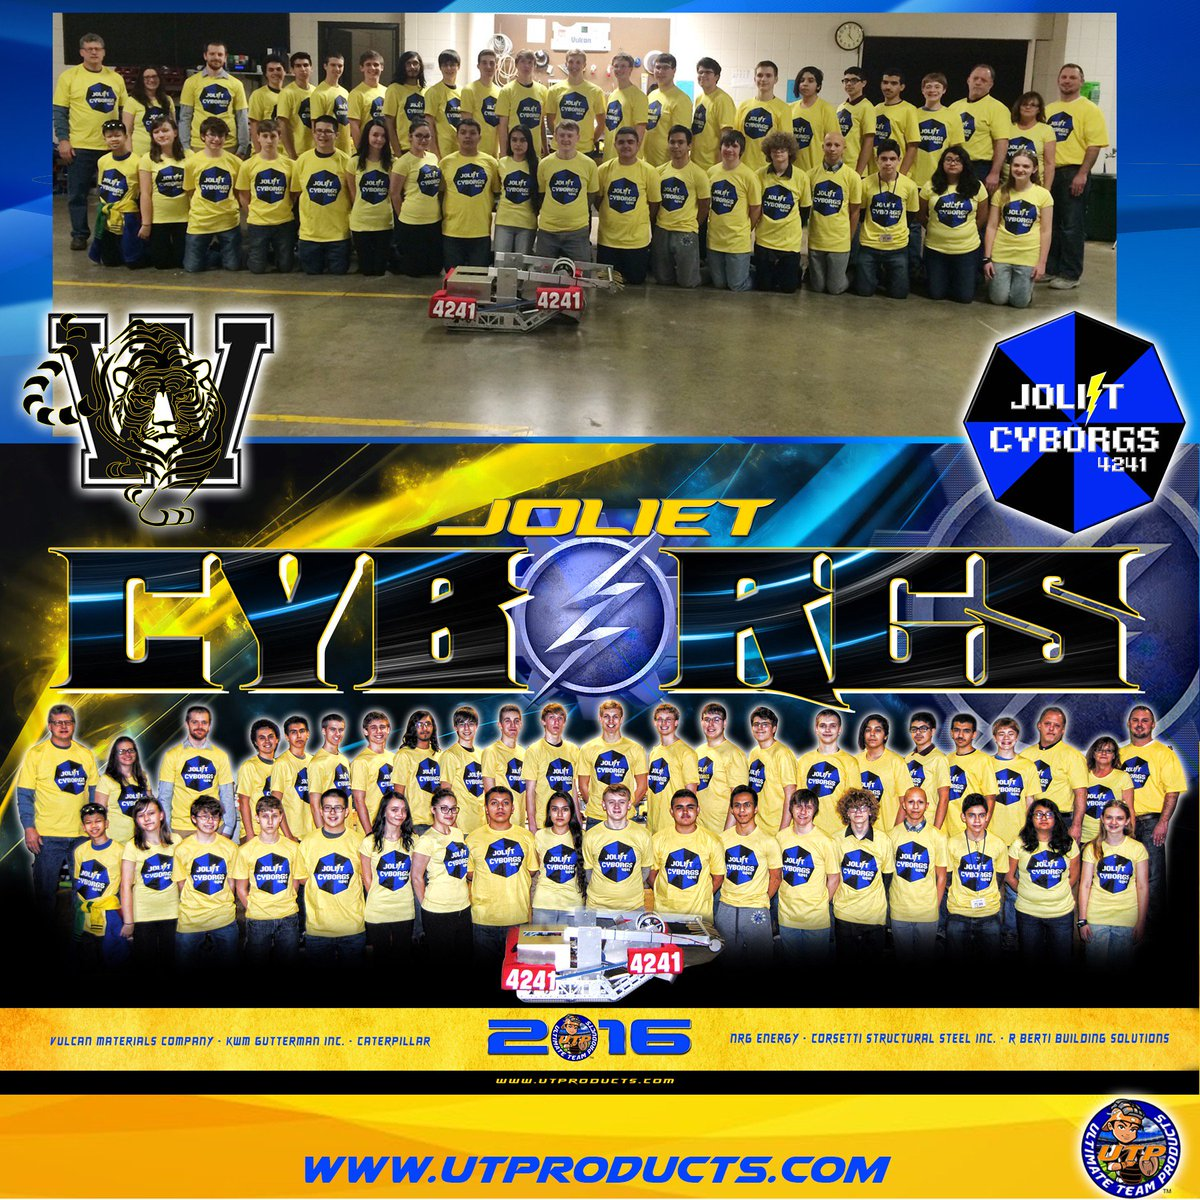 Ultimateteamproducts On Twitter Check Out This Robotics Team